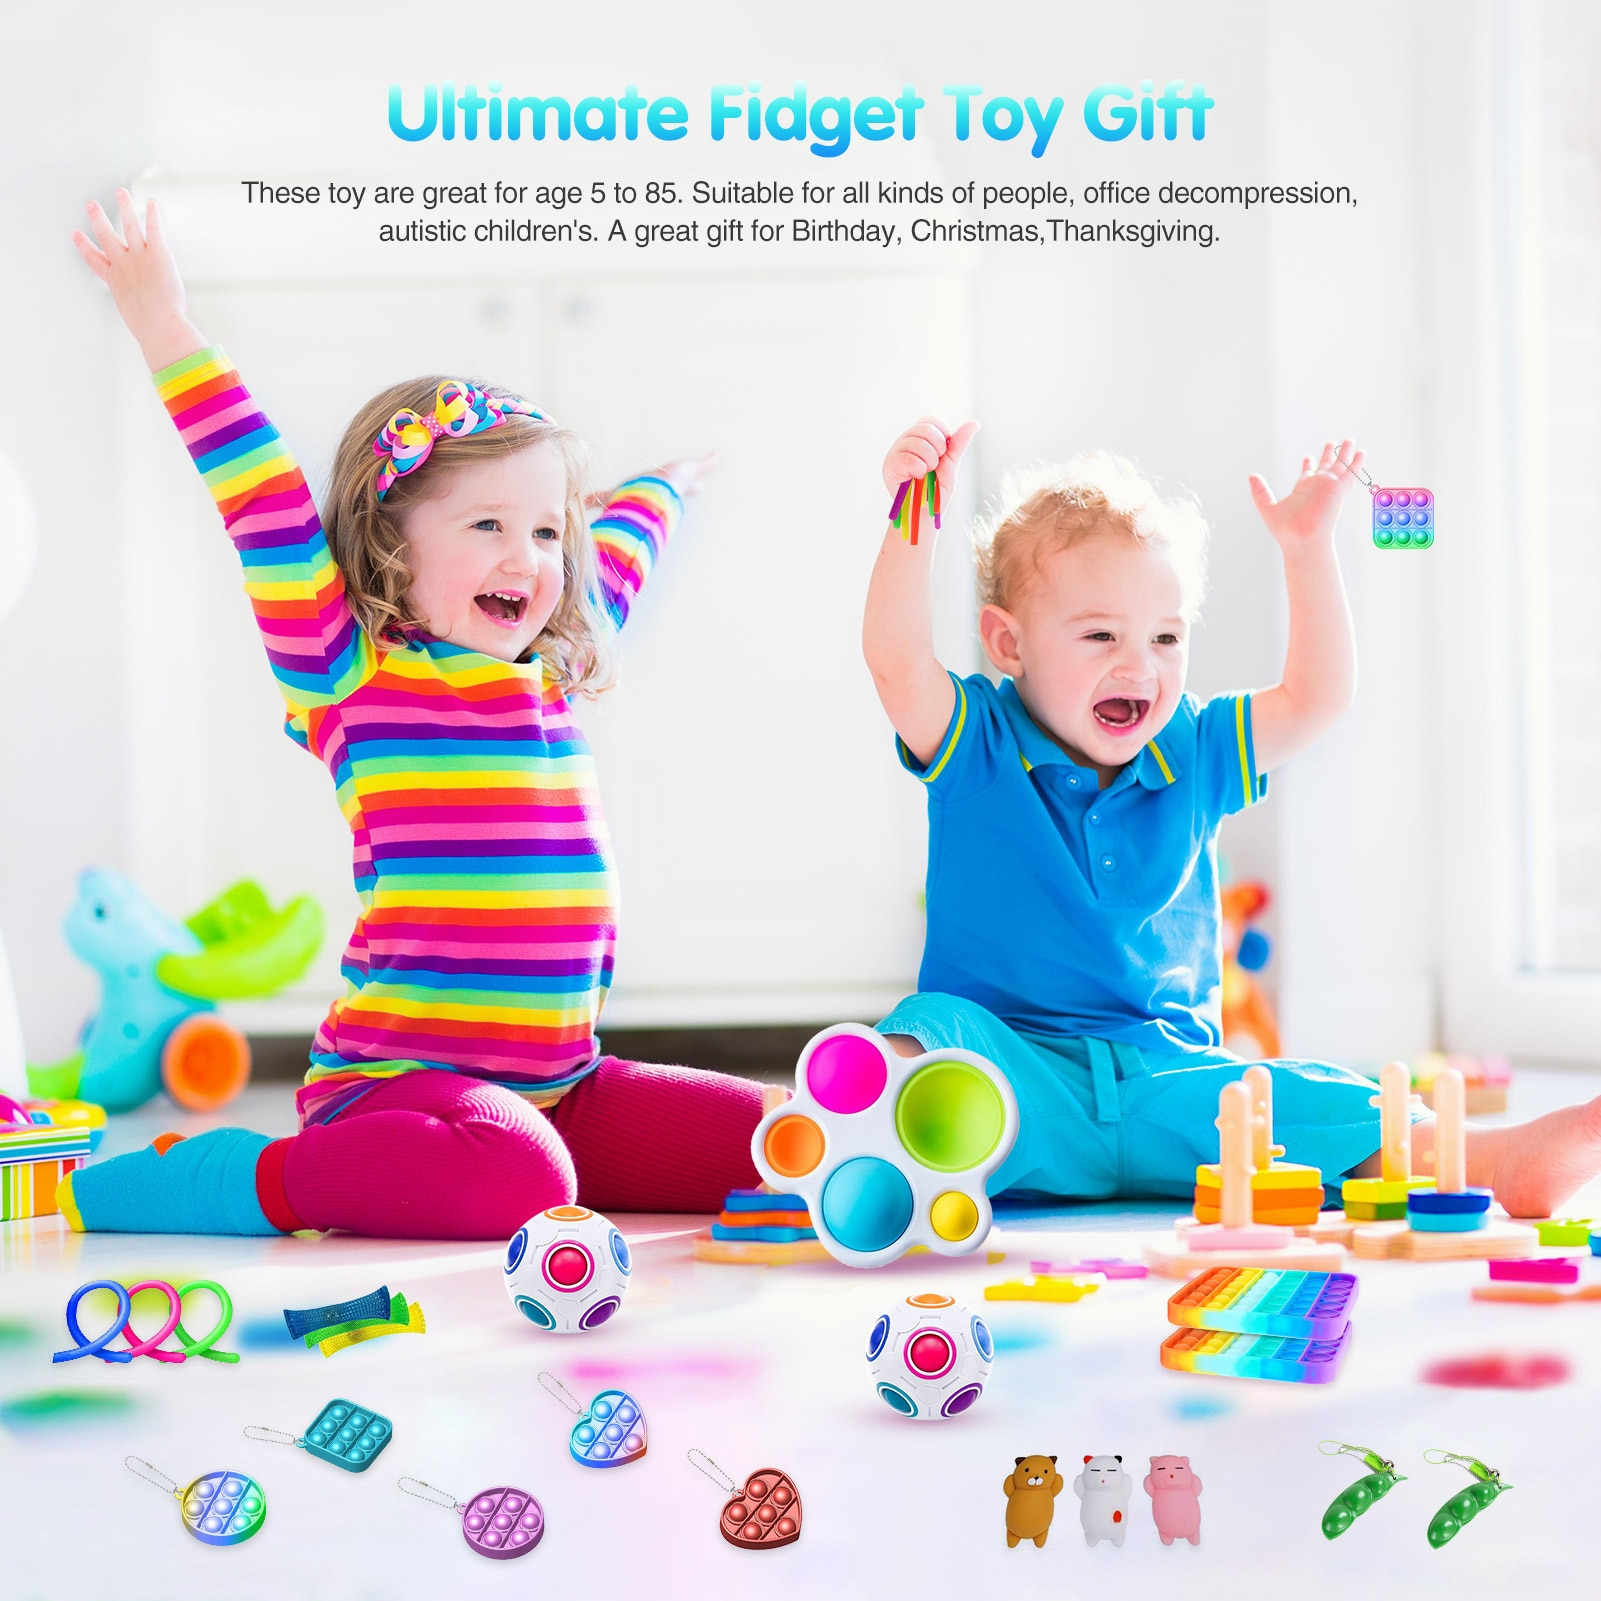 23 Pack Fidget Sensory Toy Set Stress Relief Toys for Kids Adult Autism Special Needs Stress Reliever Children Funny Gift enlarge